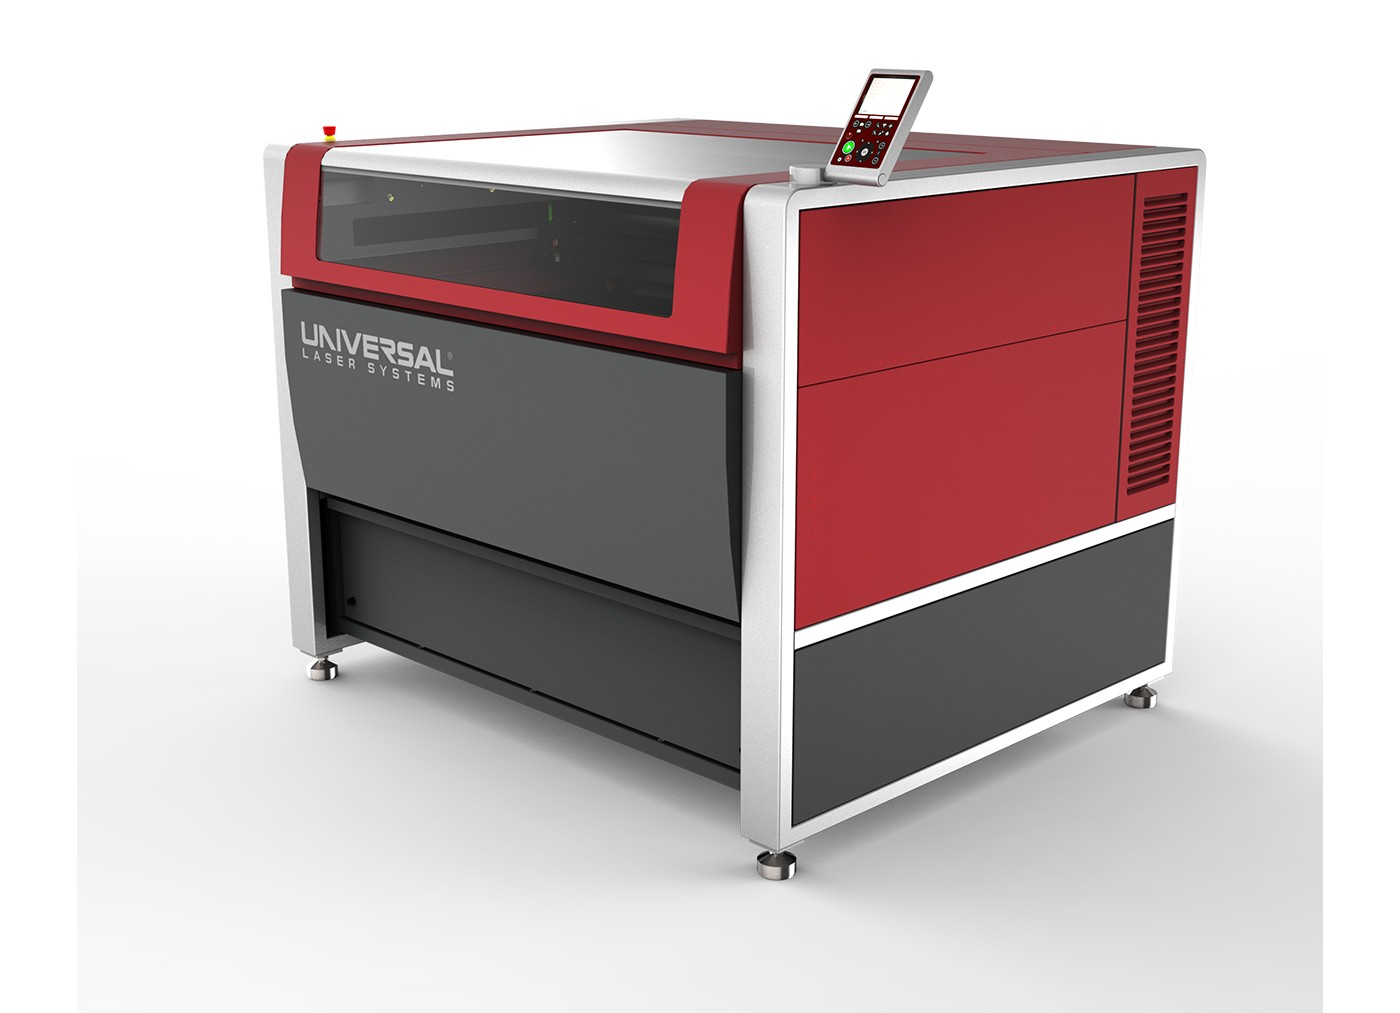 Photo of red universal laser systems laser cutter used for custom cutting film